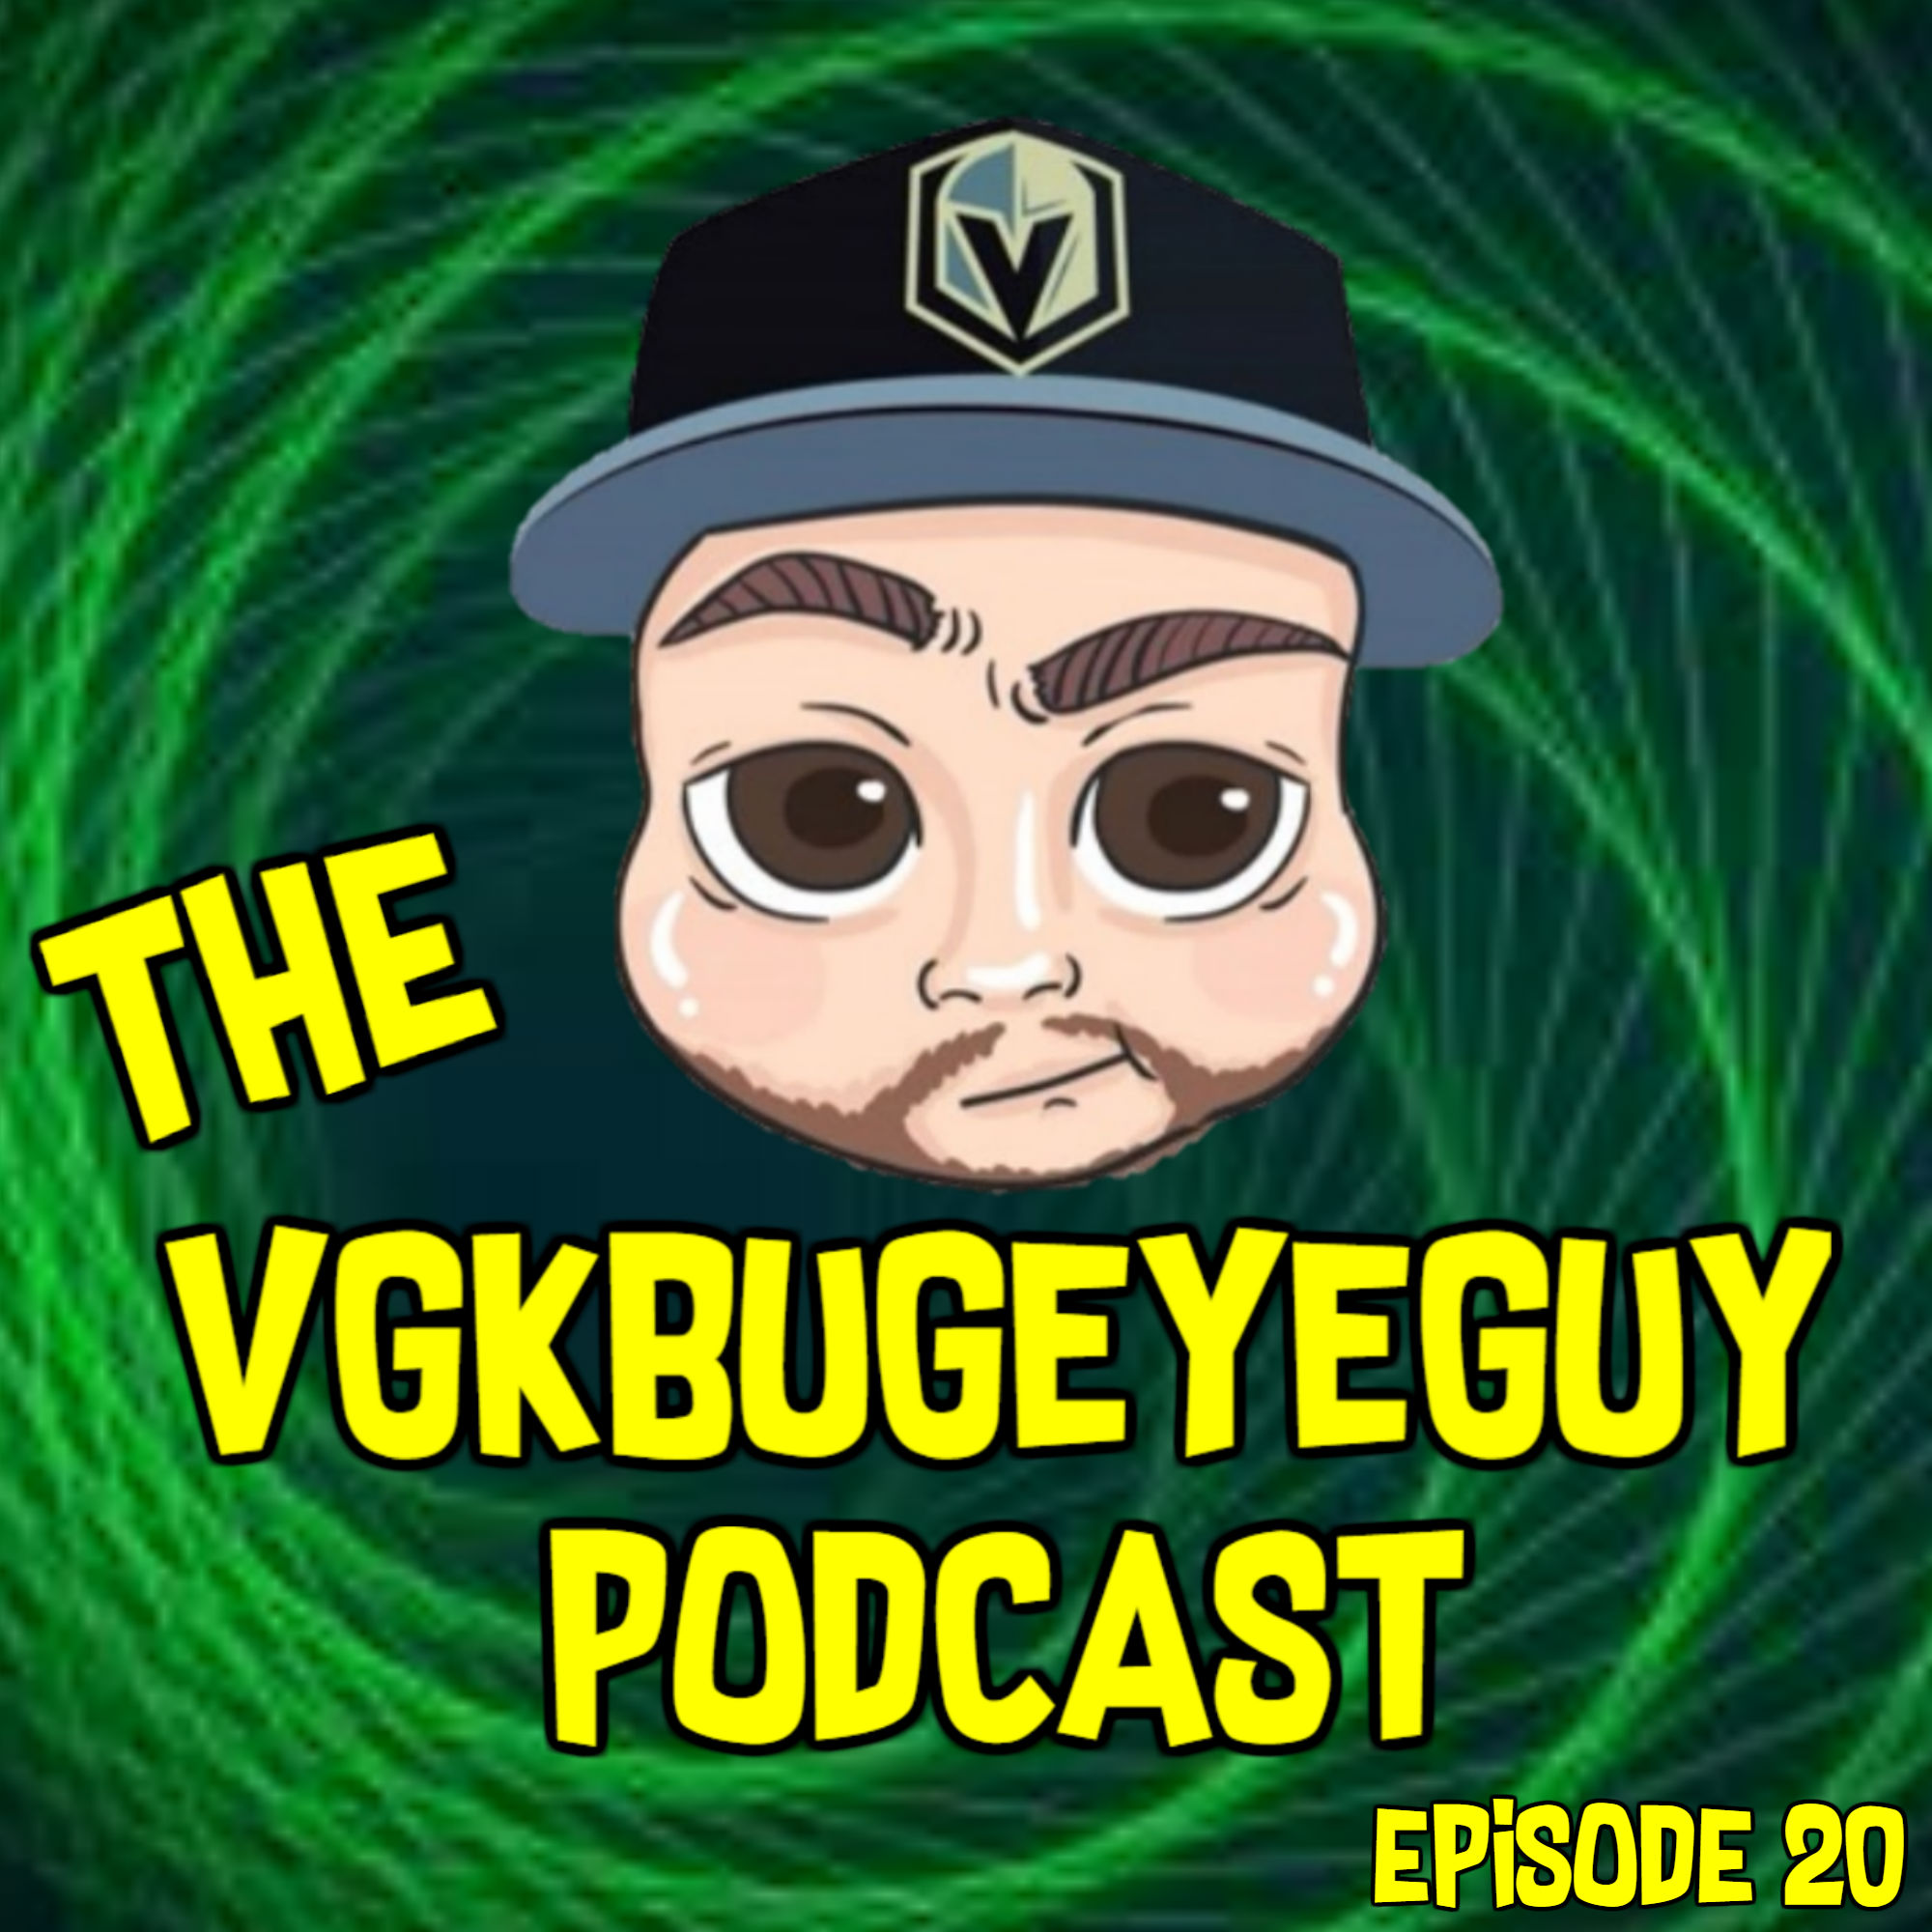 The VGKbugeyeGuy Podcast Episode 20